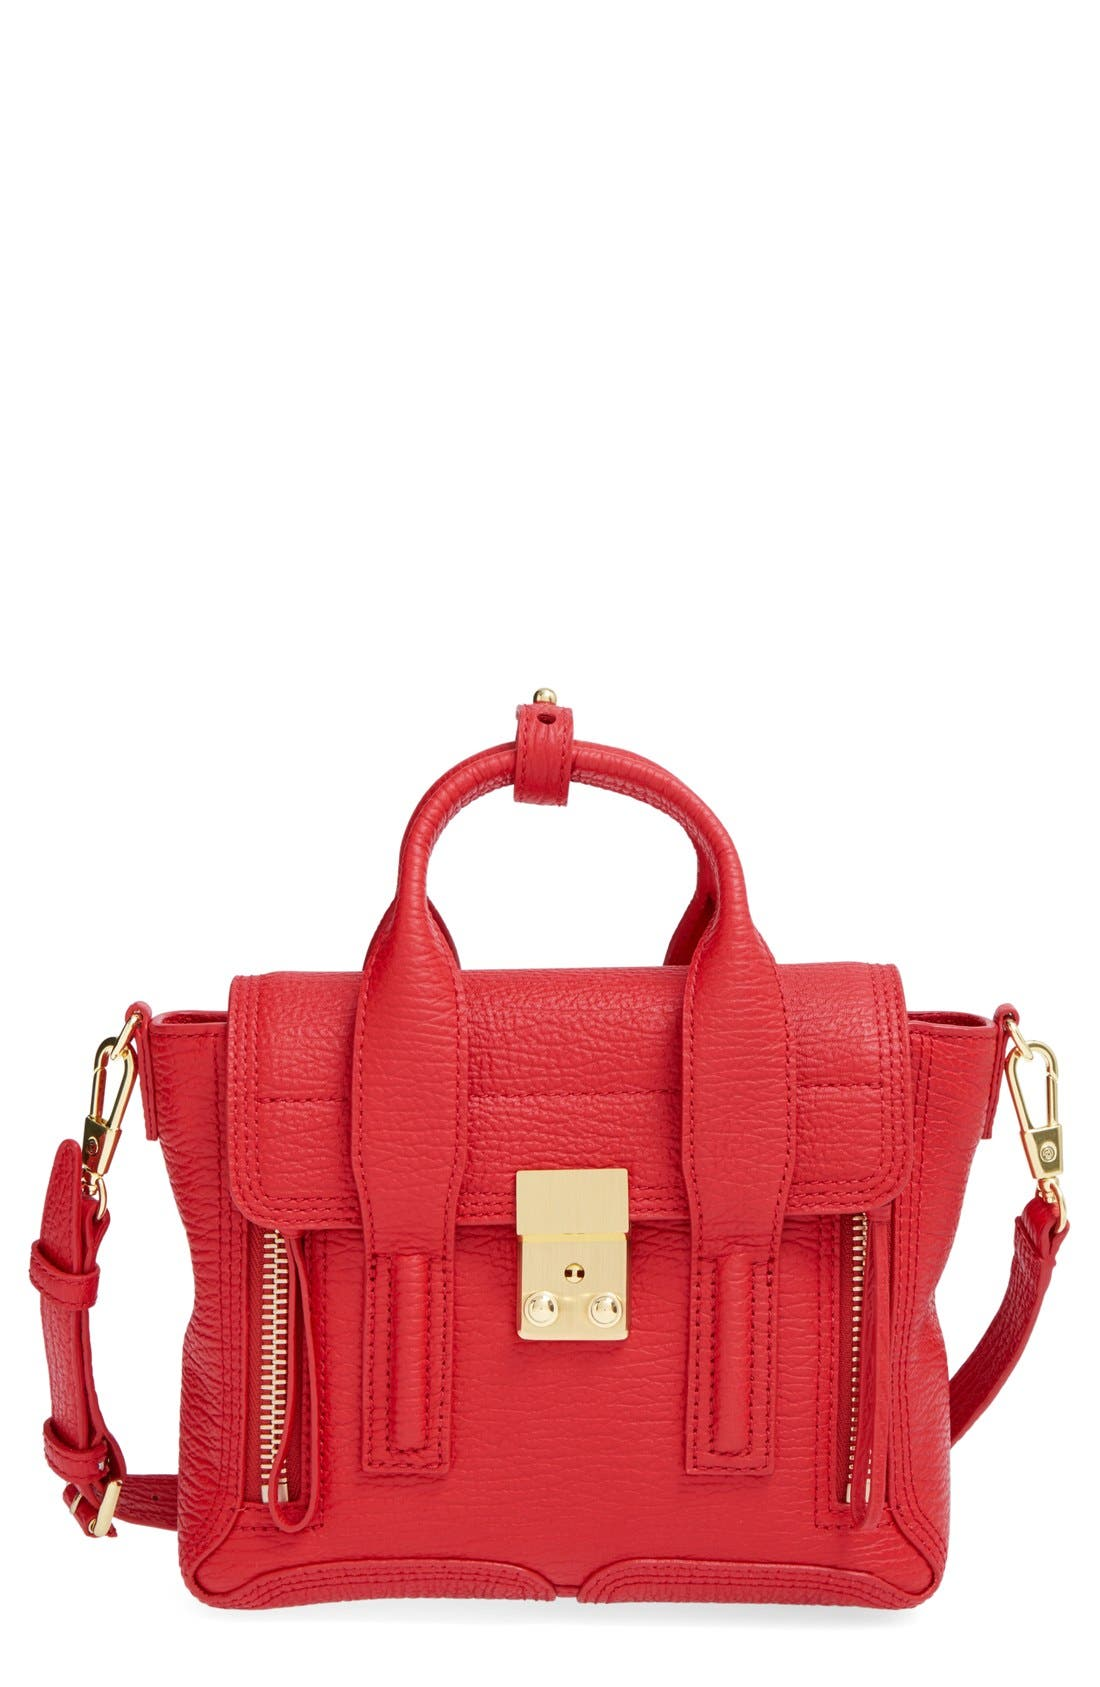 'Mini Pashli' Leather Satchel,                             Main thumbnail 1, color,                             600